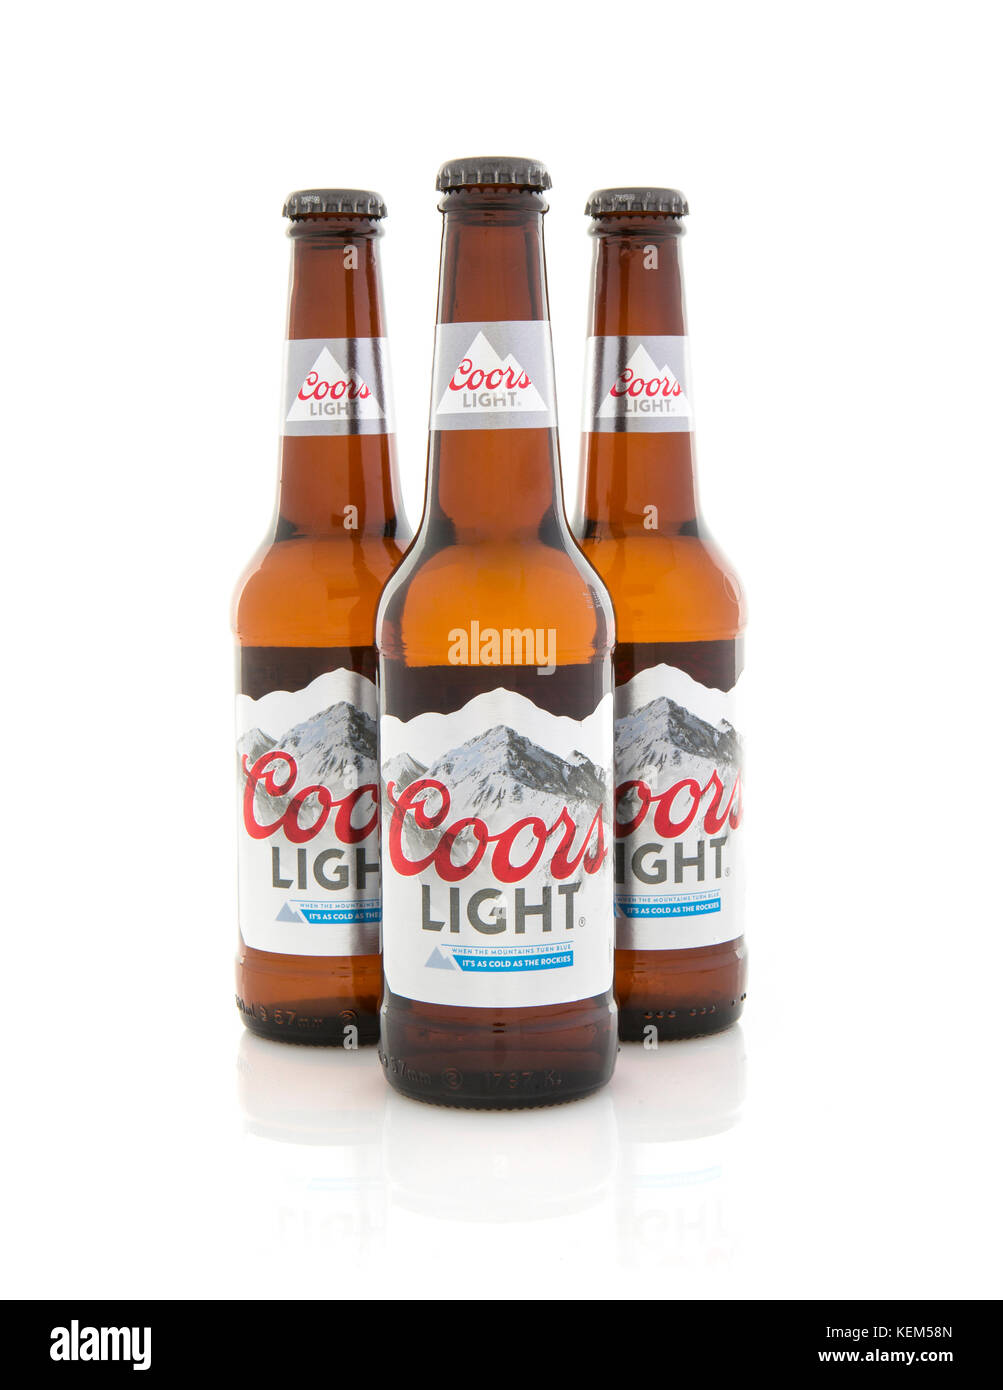 Coors light stock photos coors light stock images alamy swindon uk october 22 2017 three bottles of coors light beer on aloadofball Images